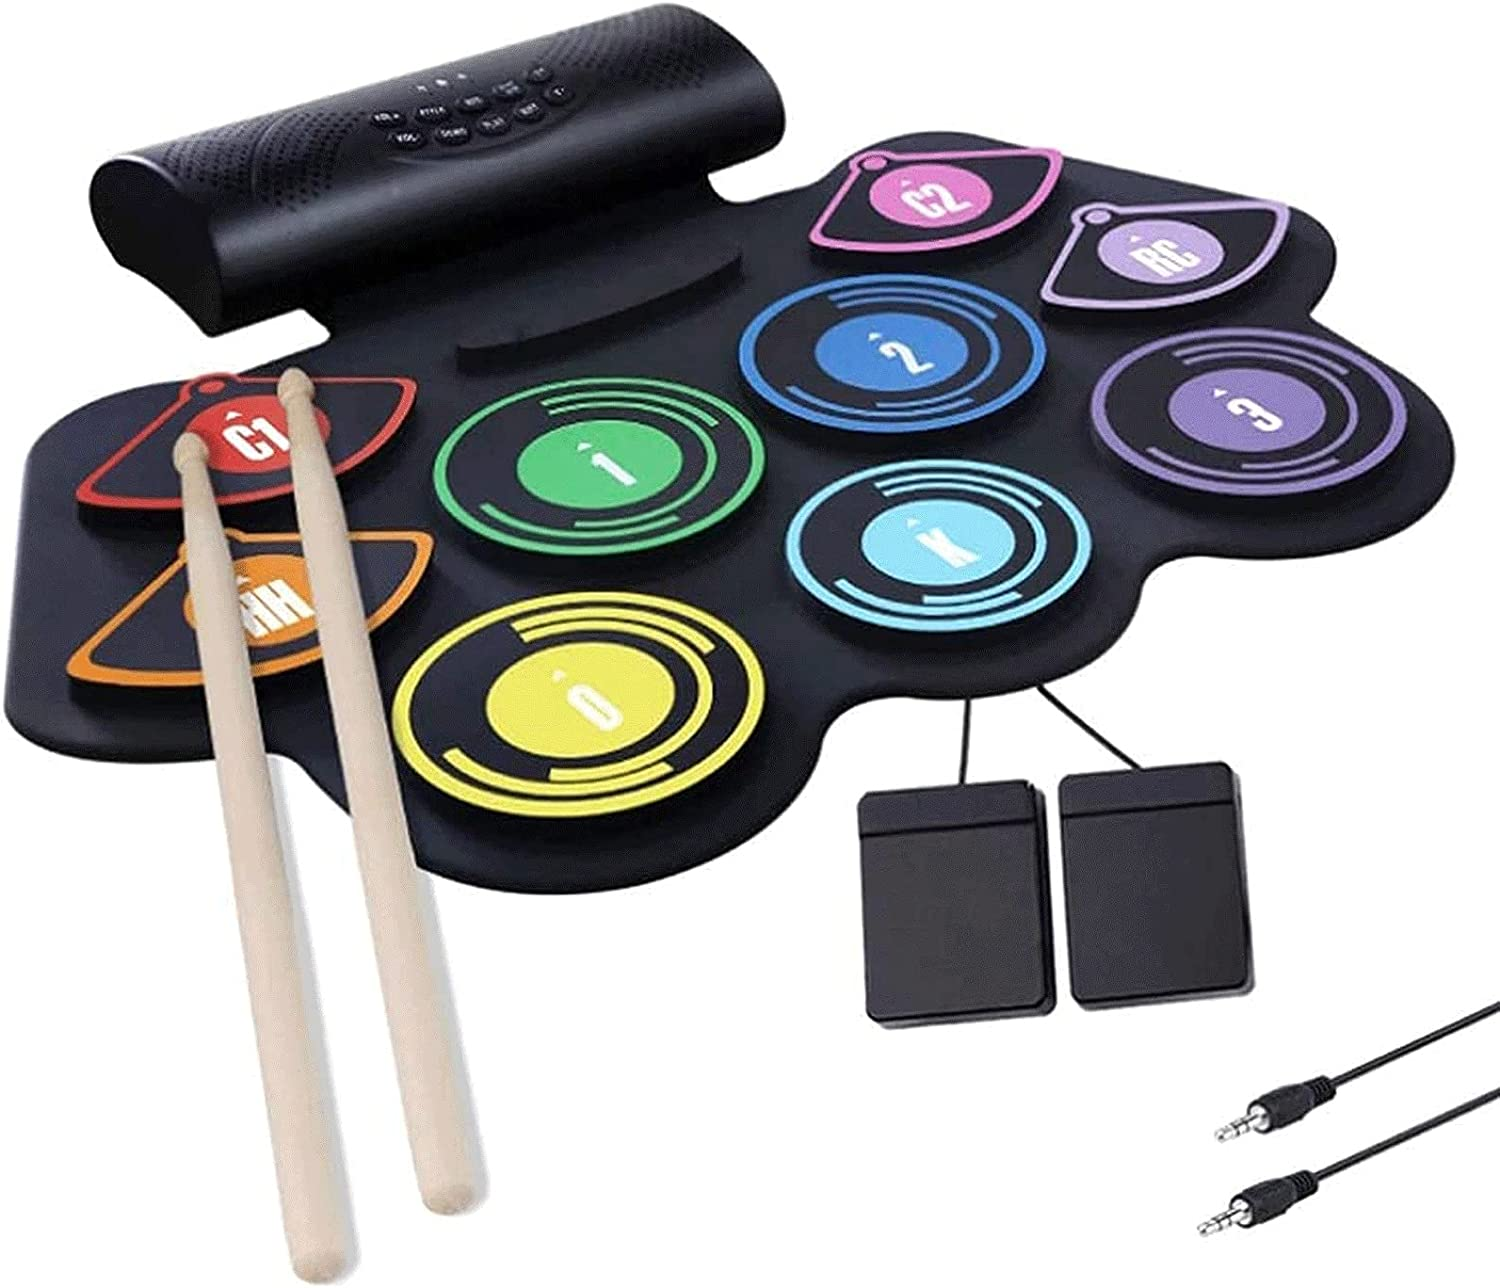 WPHGS Electronic Drum Set Roll Kit Fort Worth Popularity Mall Pad Up Practice wi